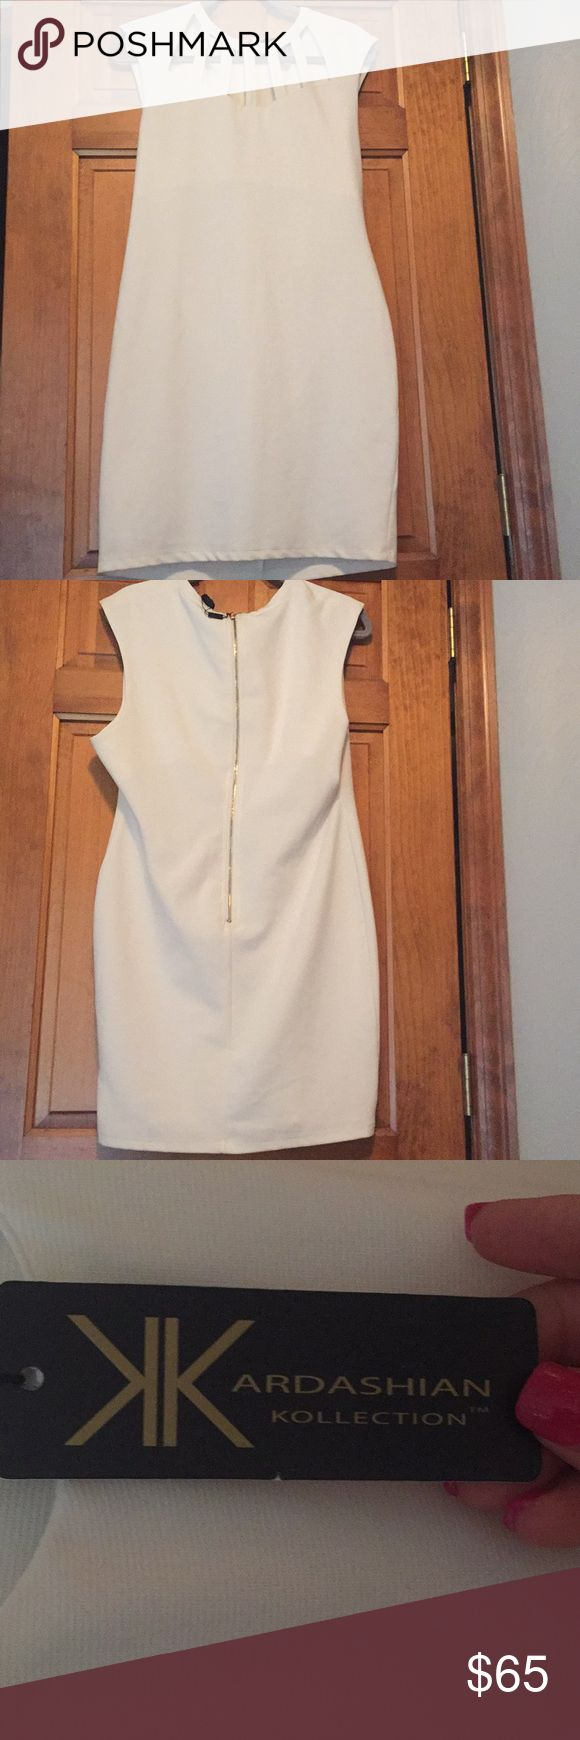 White Kardashian Kollection Dress White Kardashian Kollection Dress, Size XL Kardashian Kollection Dresses